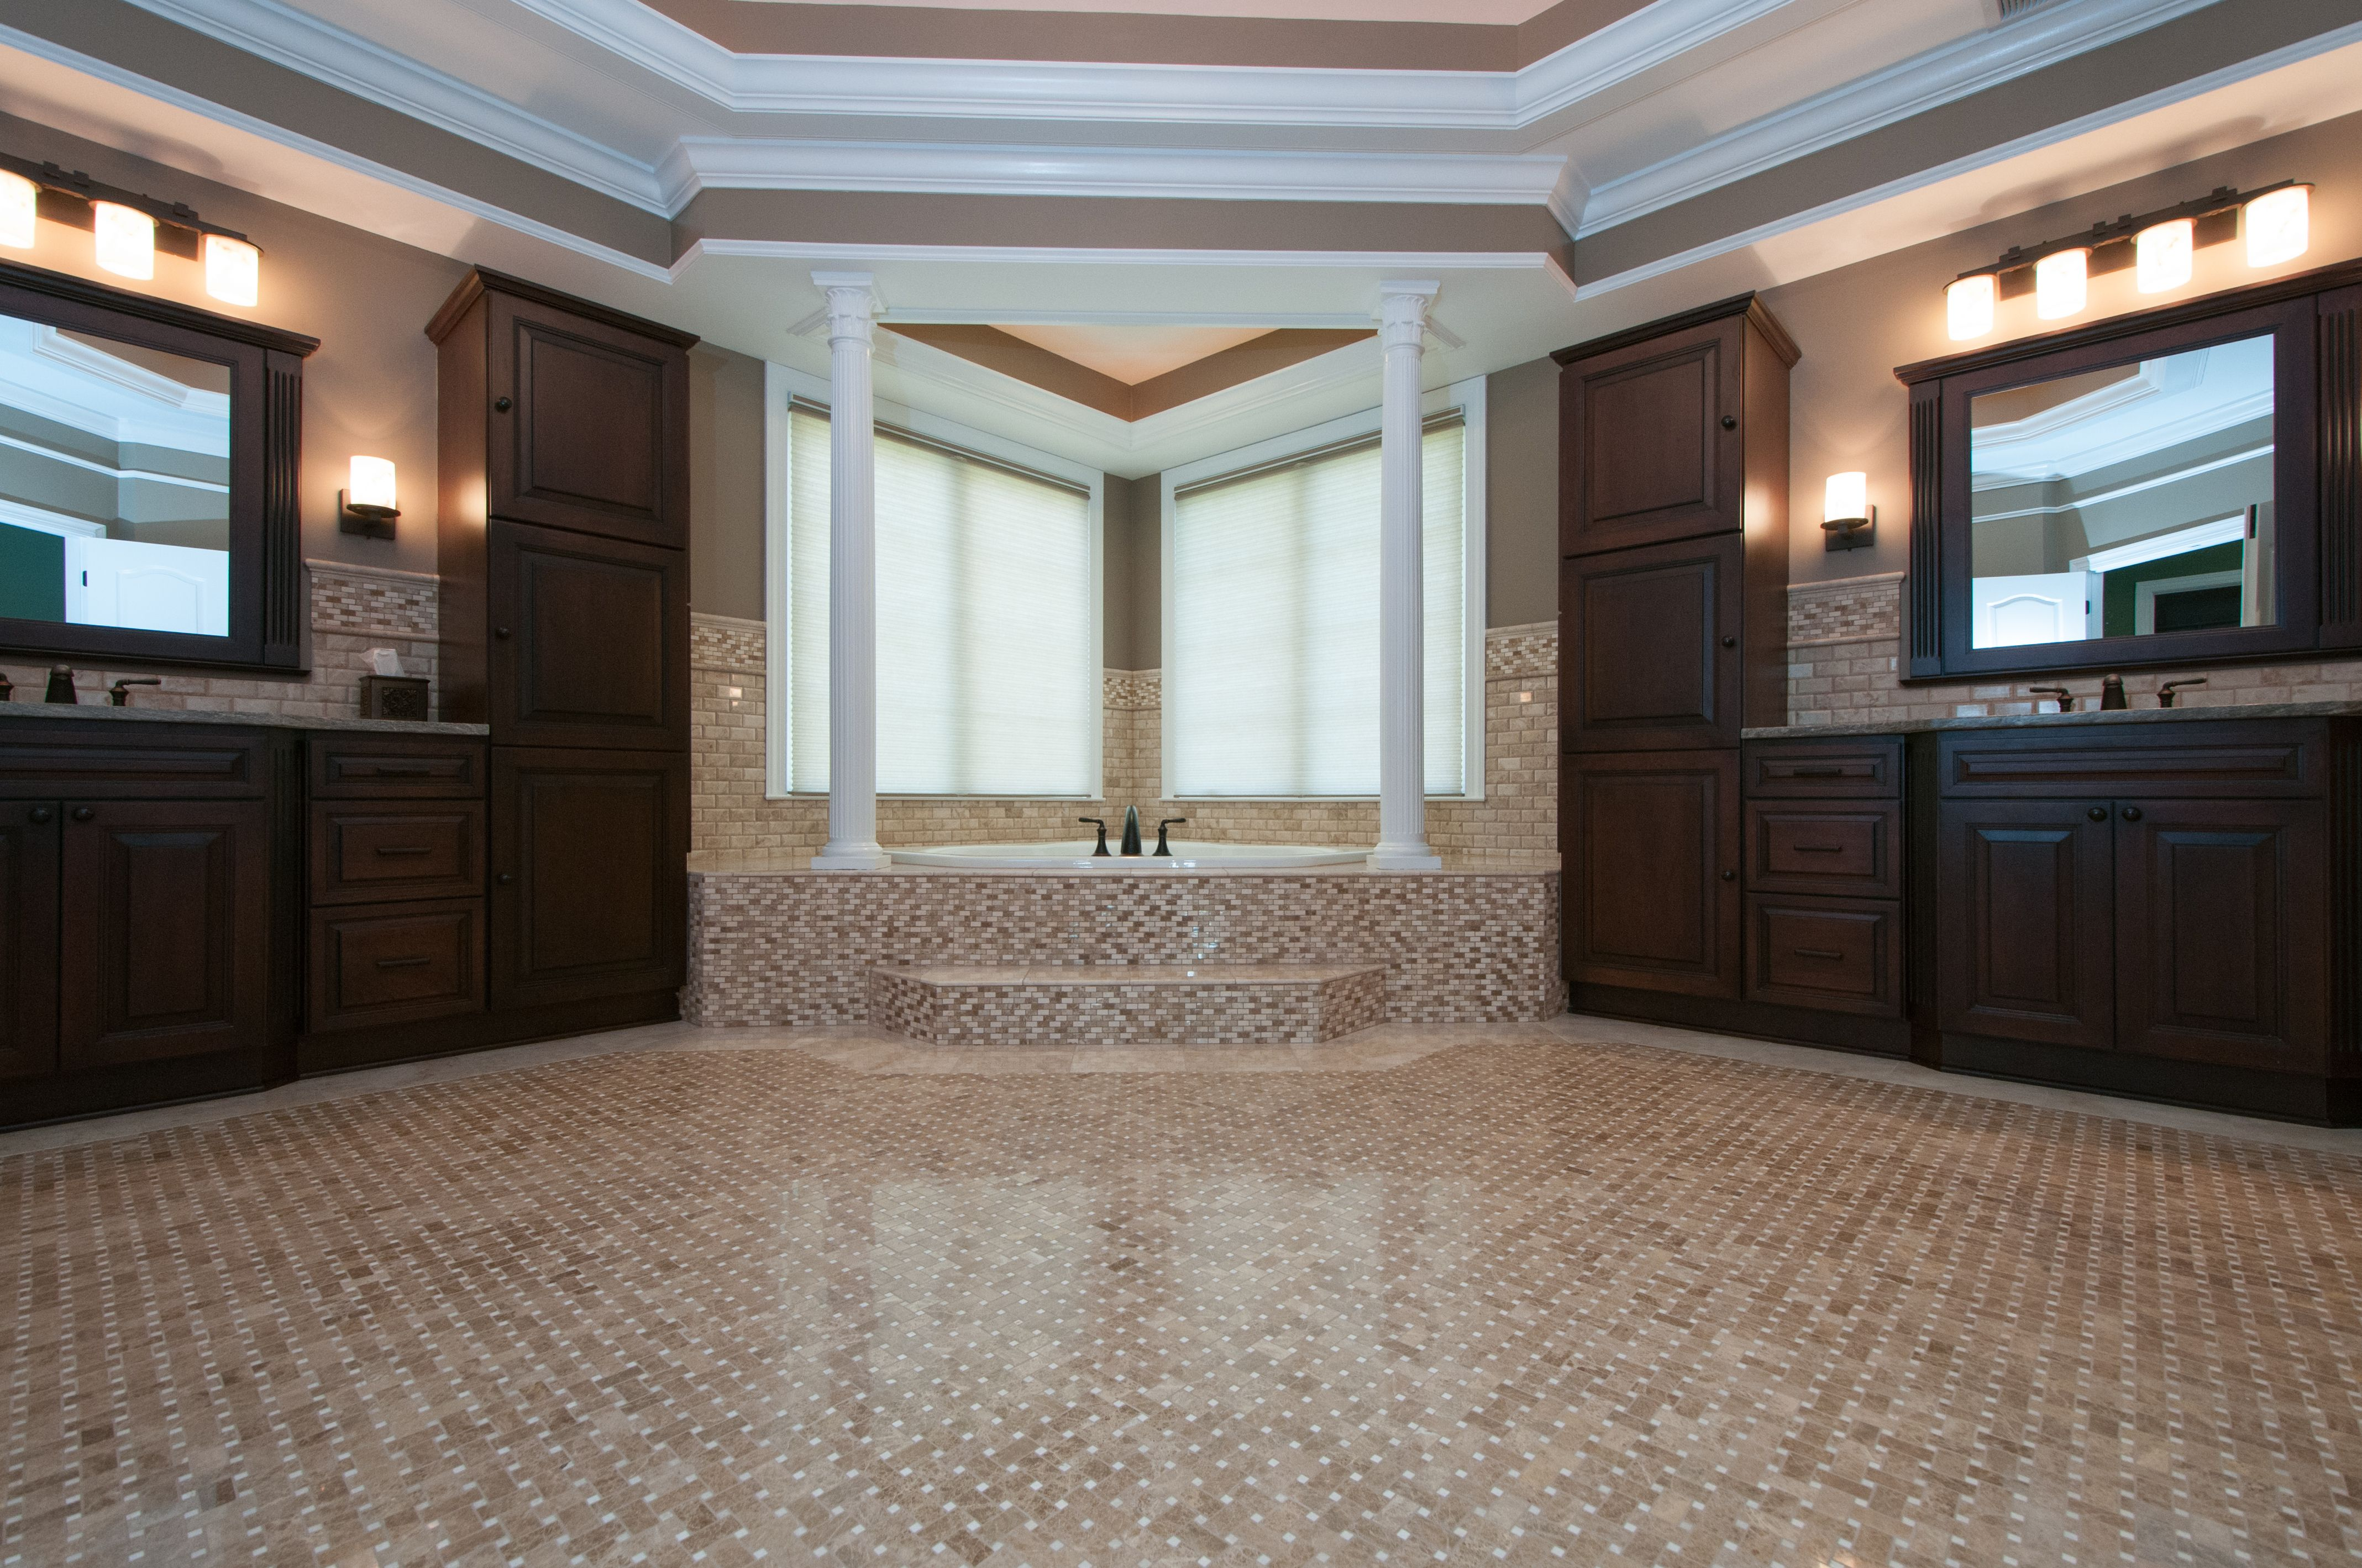 Very Detailed Tile Work Herebacksplash Above The Cabinets And Classy Free 3D Bathroom Design Software Decorating Design